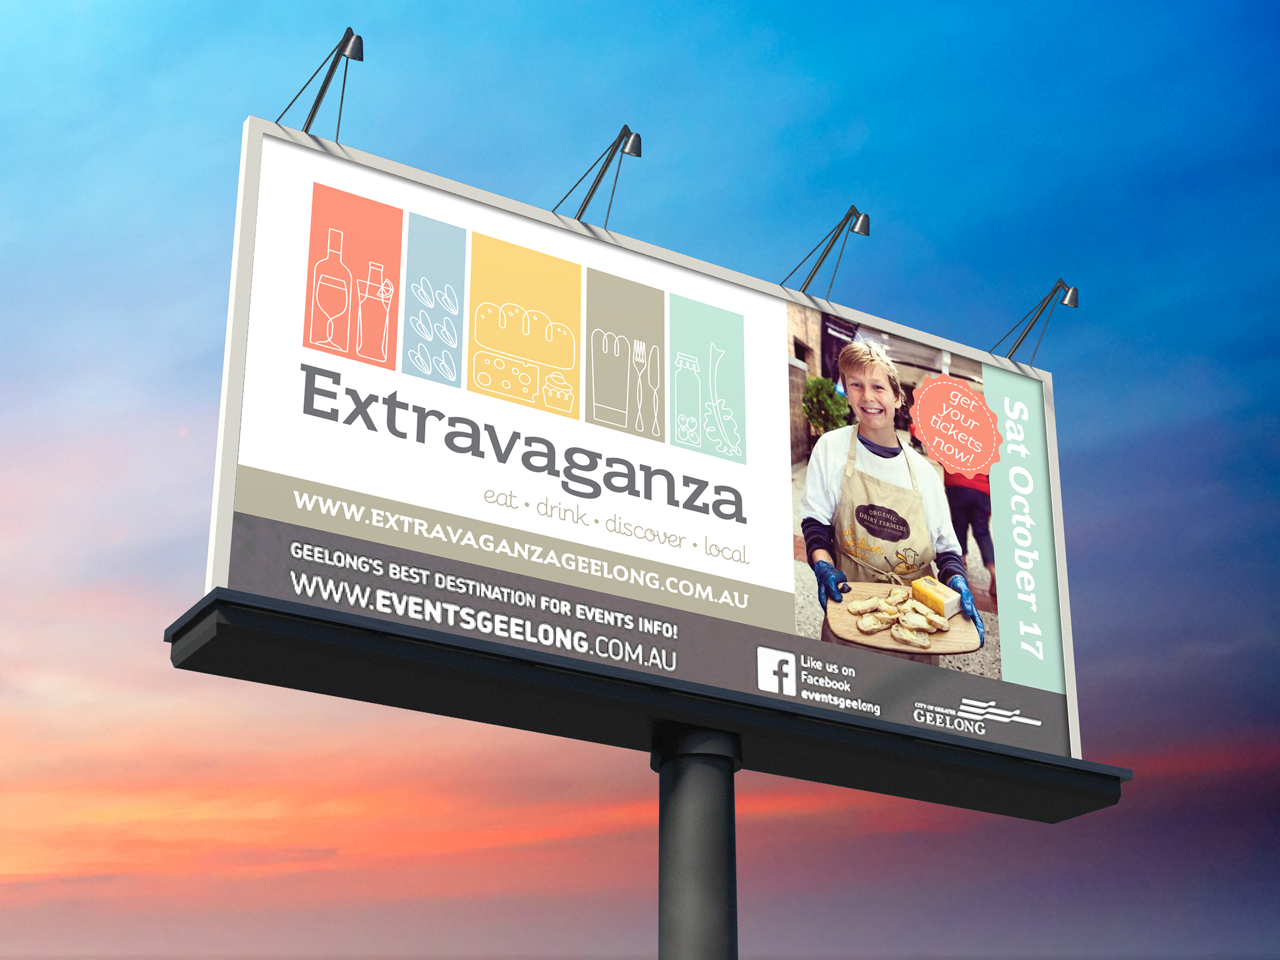 EXTRAVAGANZA - Rebranding. Billboard. Morrison Design, Graphic Design and Branding Agency Geelong, Melbourne, VIC.